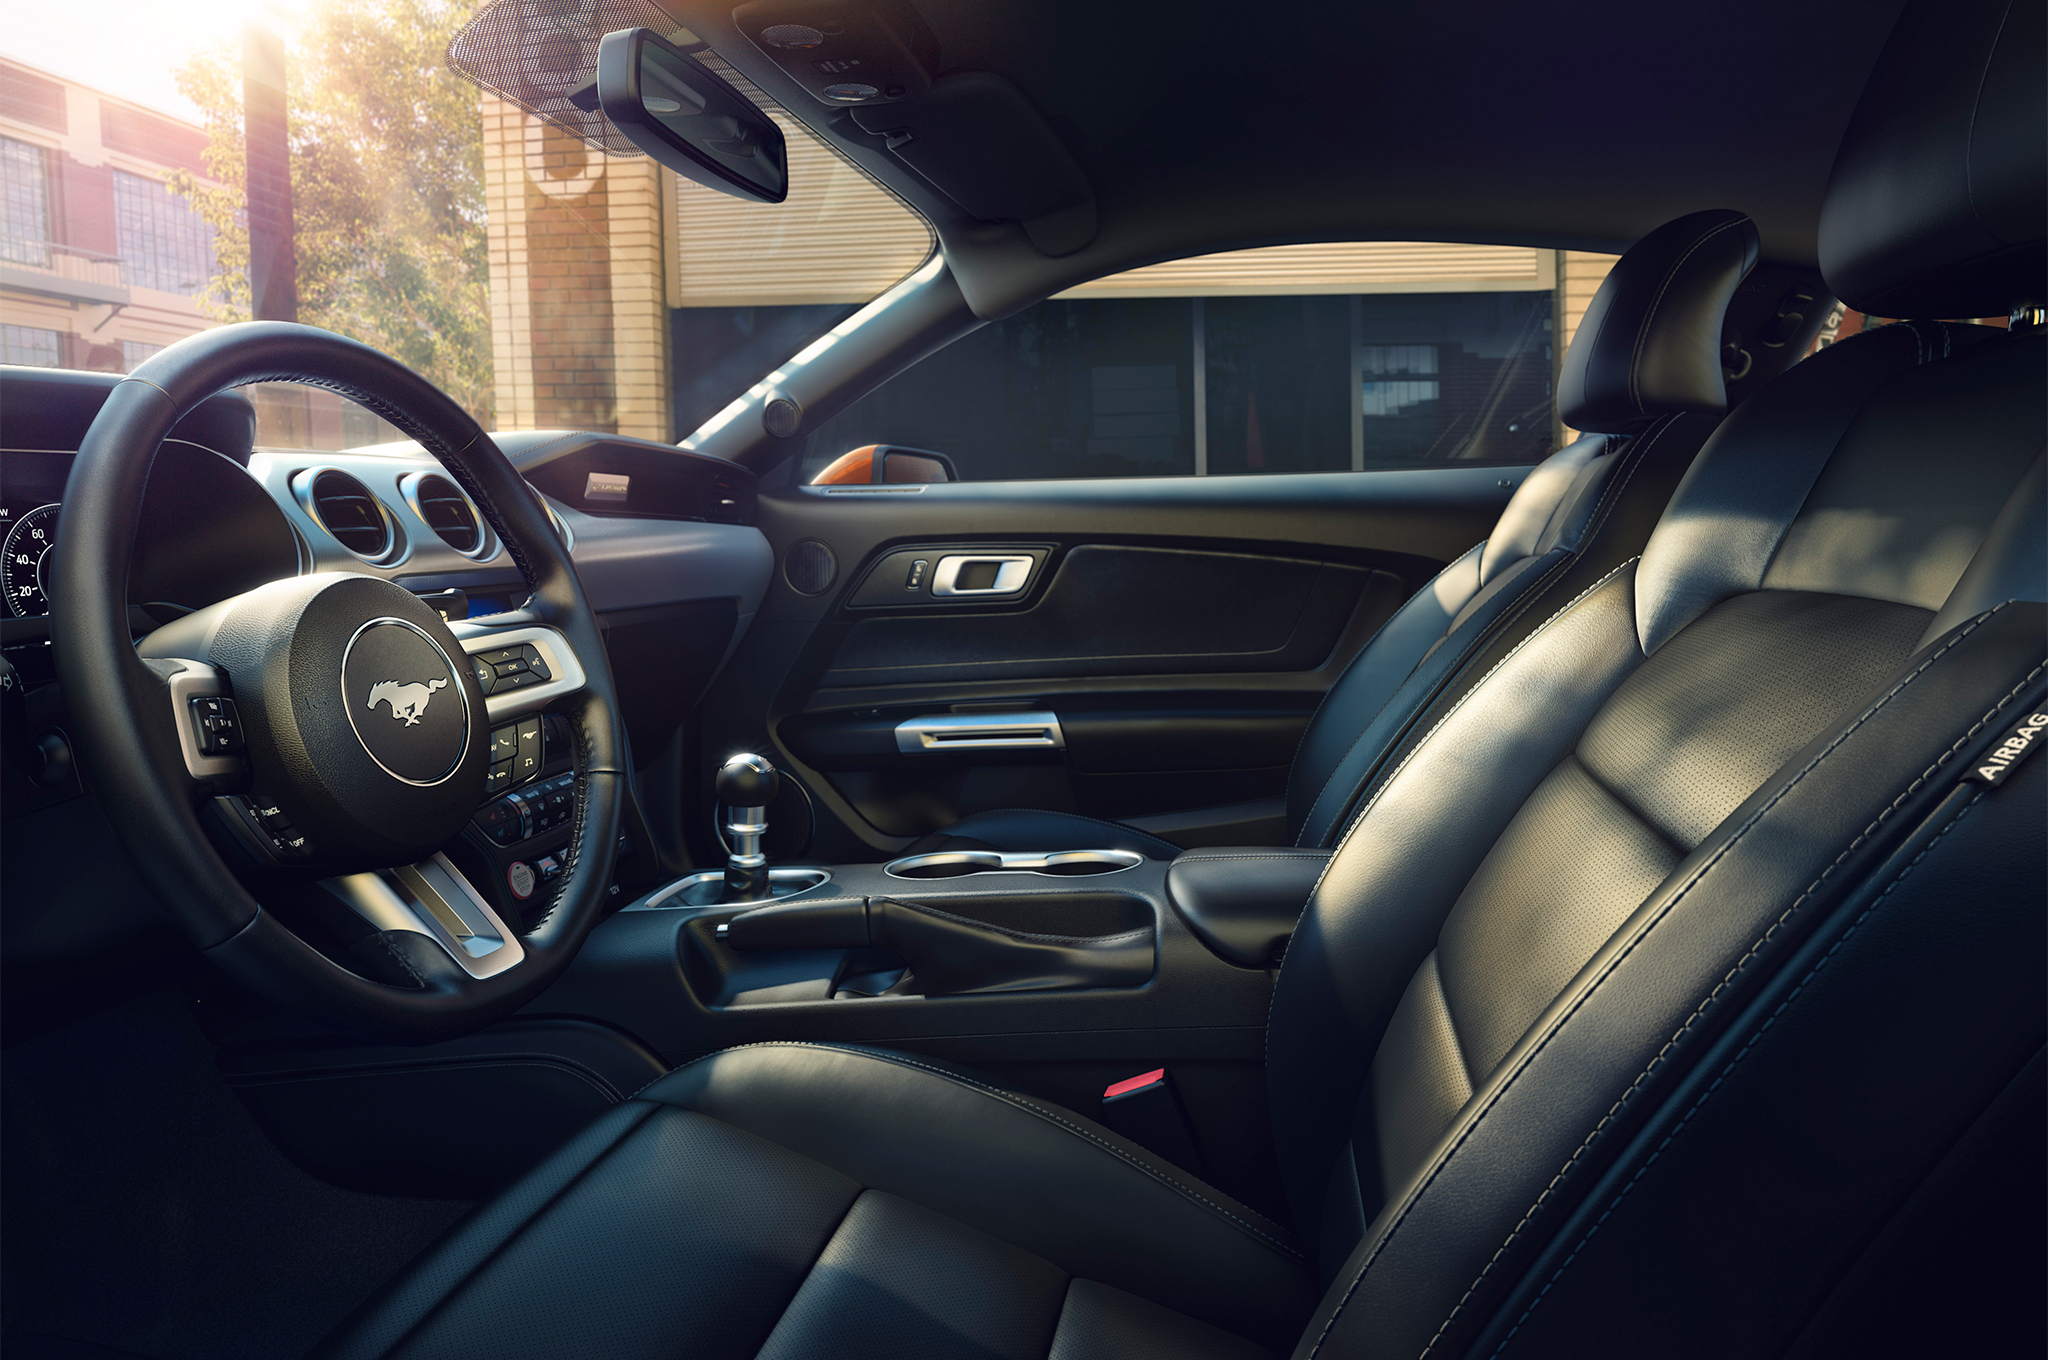 2018-Ford-Mustang-front-interior